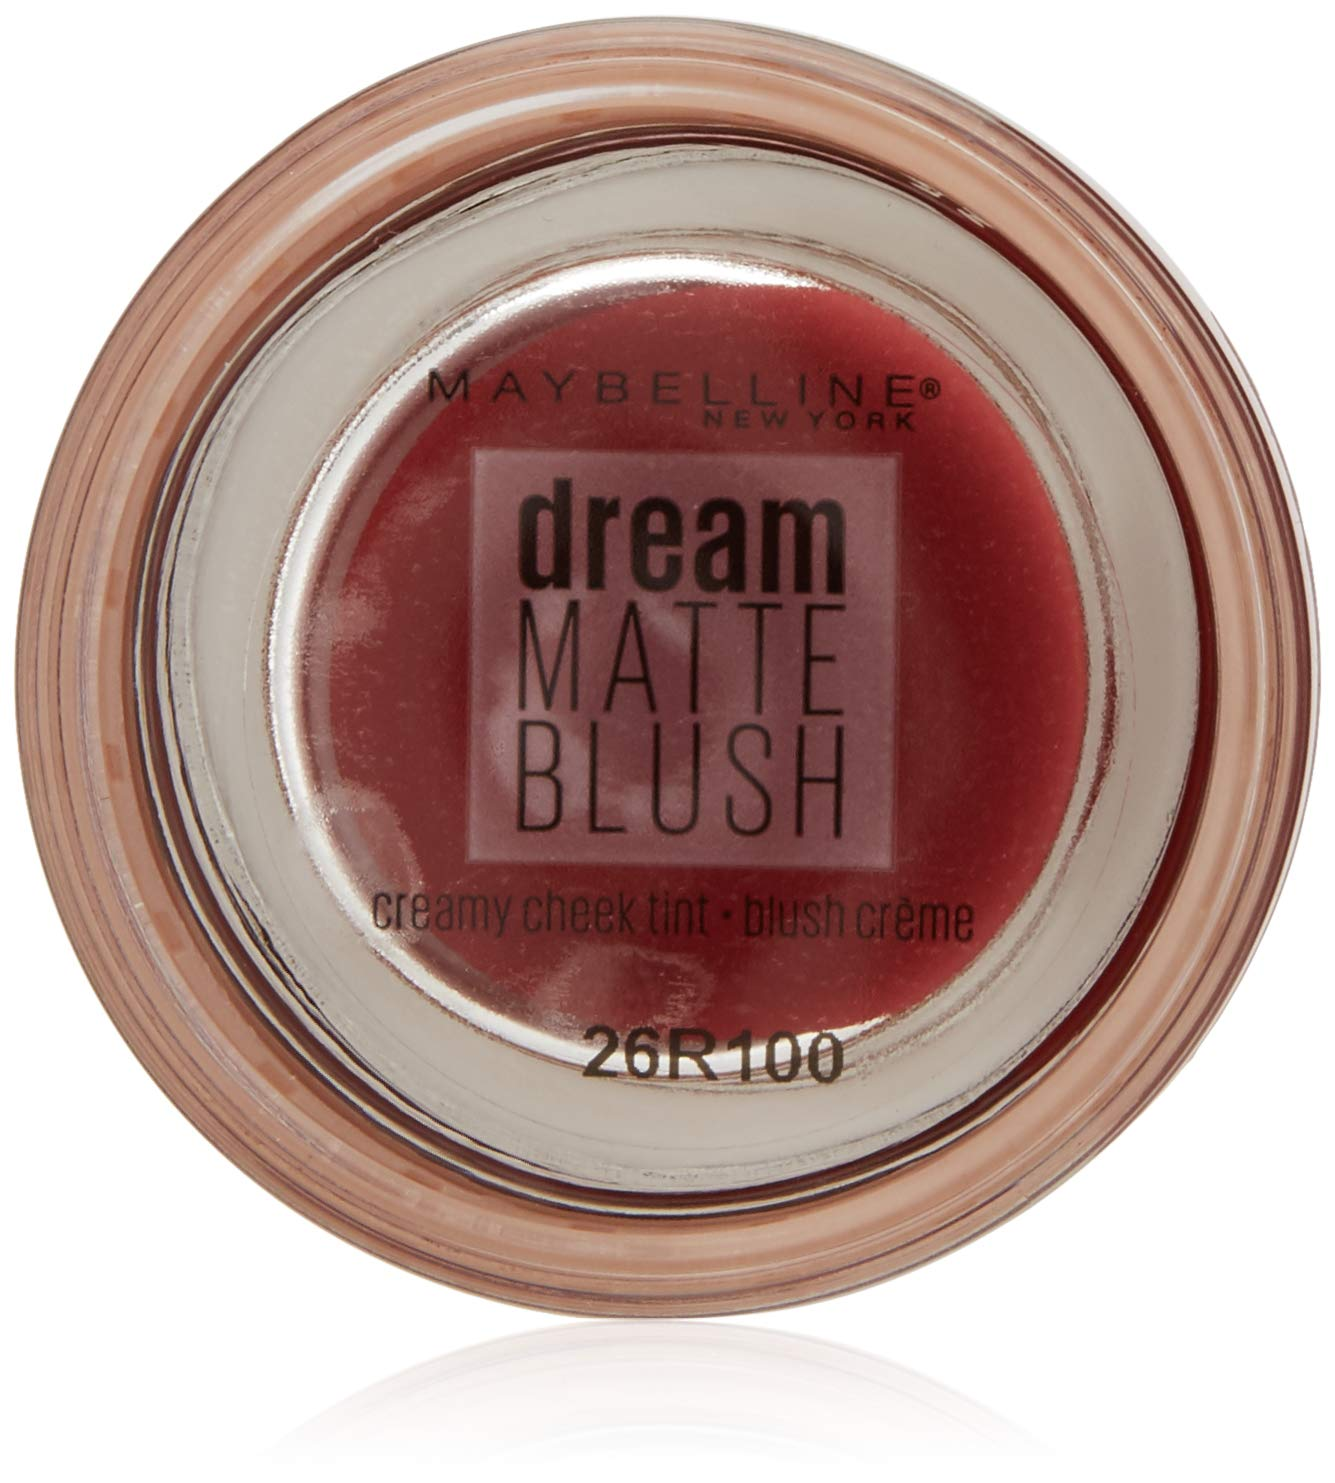 Maybelline Dream Matte Face Blush 80 Bity Of Berry, 7.5g L' Oreal 3600531484804